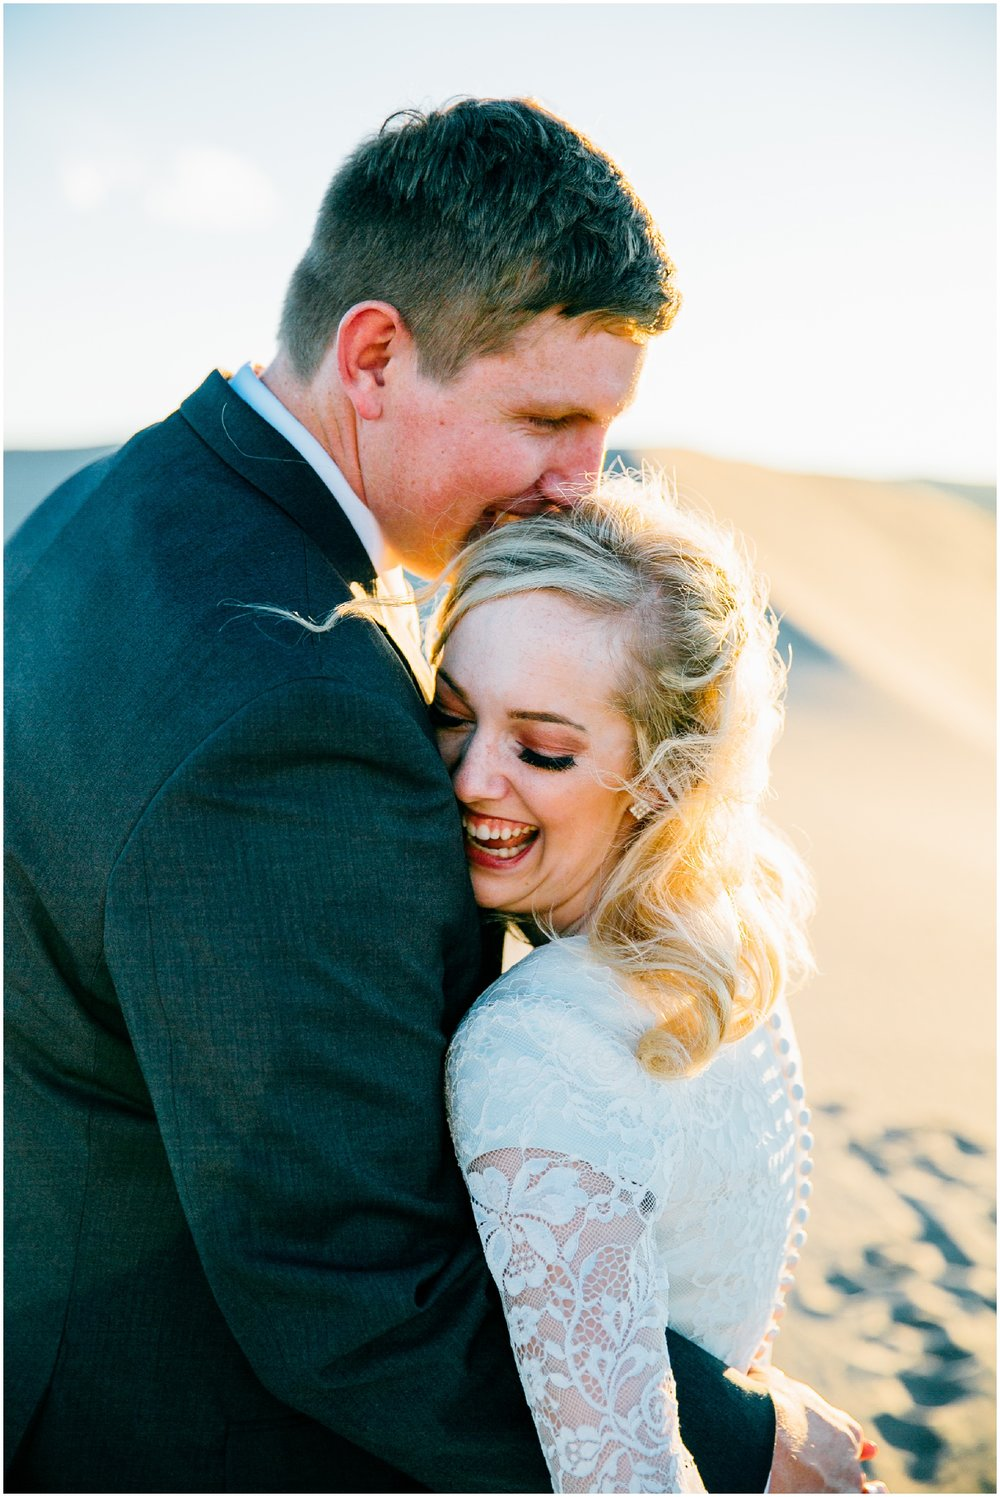 saint-anthony-sand-dunes-bridals-idaho-engagements-colorado-wyoming-wedding-photographer_0743.jpg